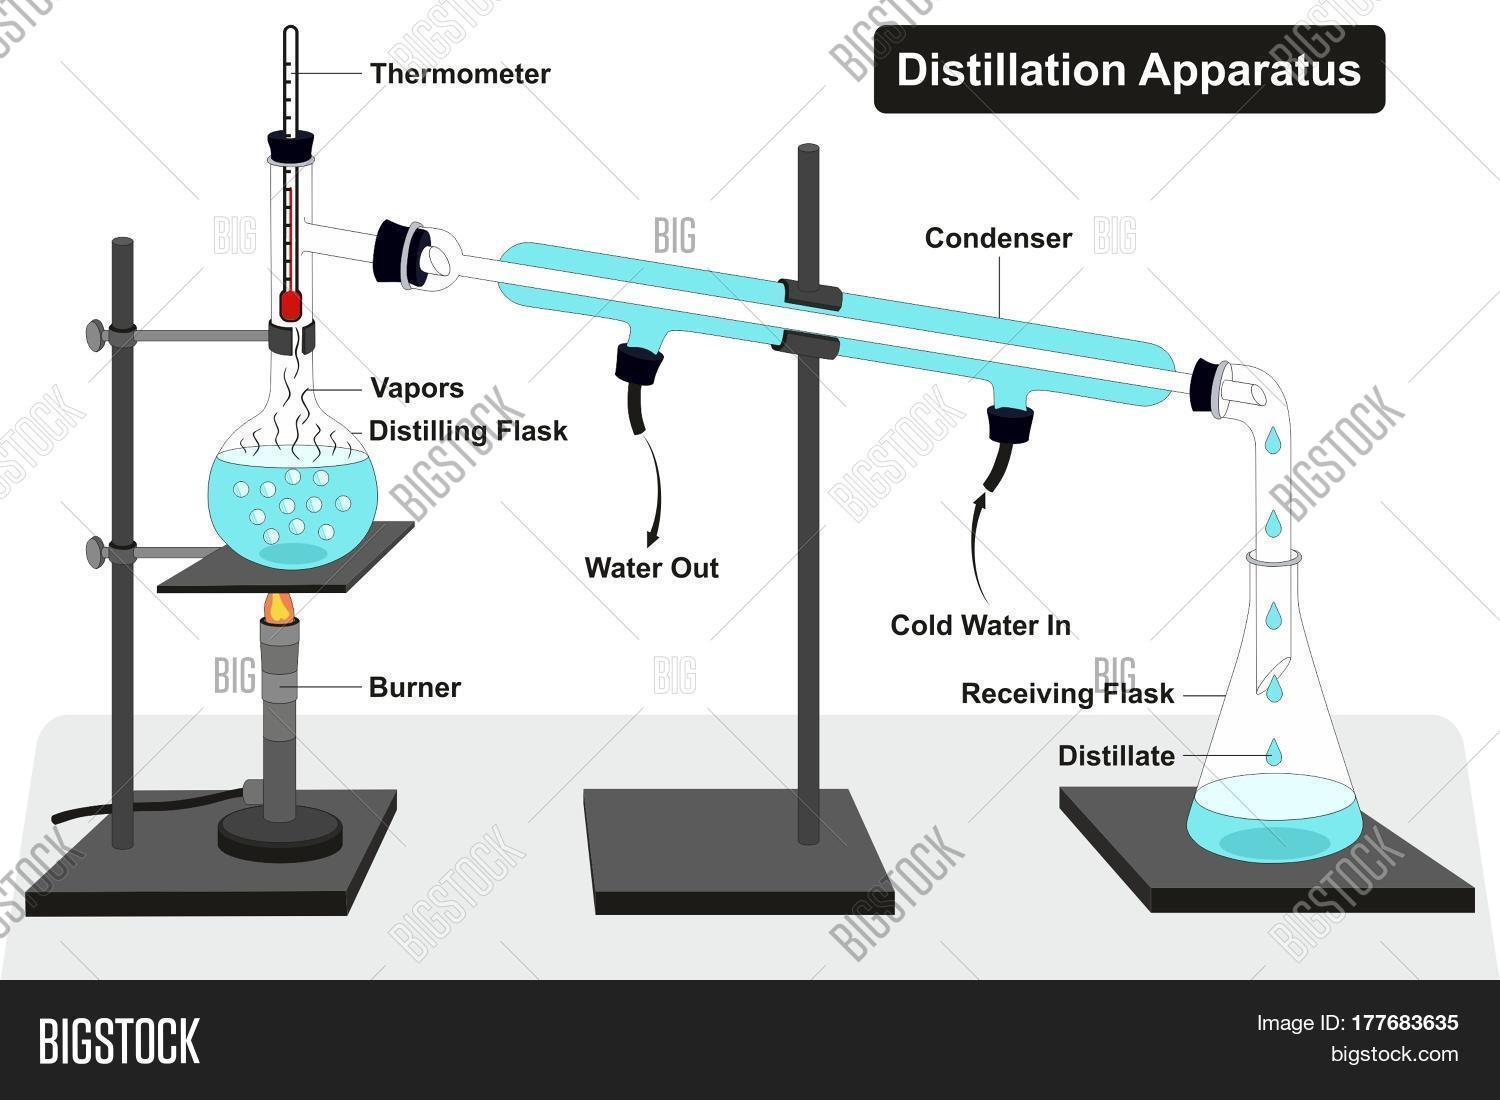 Distillation apparatus diagram full image photo bigstock distillation apparatus diagram with full process and lab tools including thermometer burner condenser distilling and receiving pooptronica Choice Image